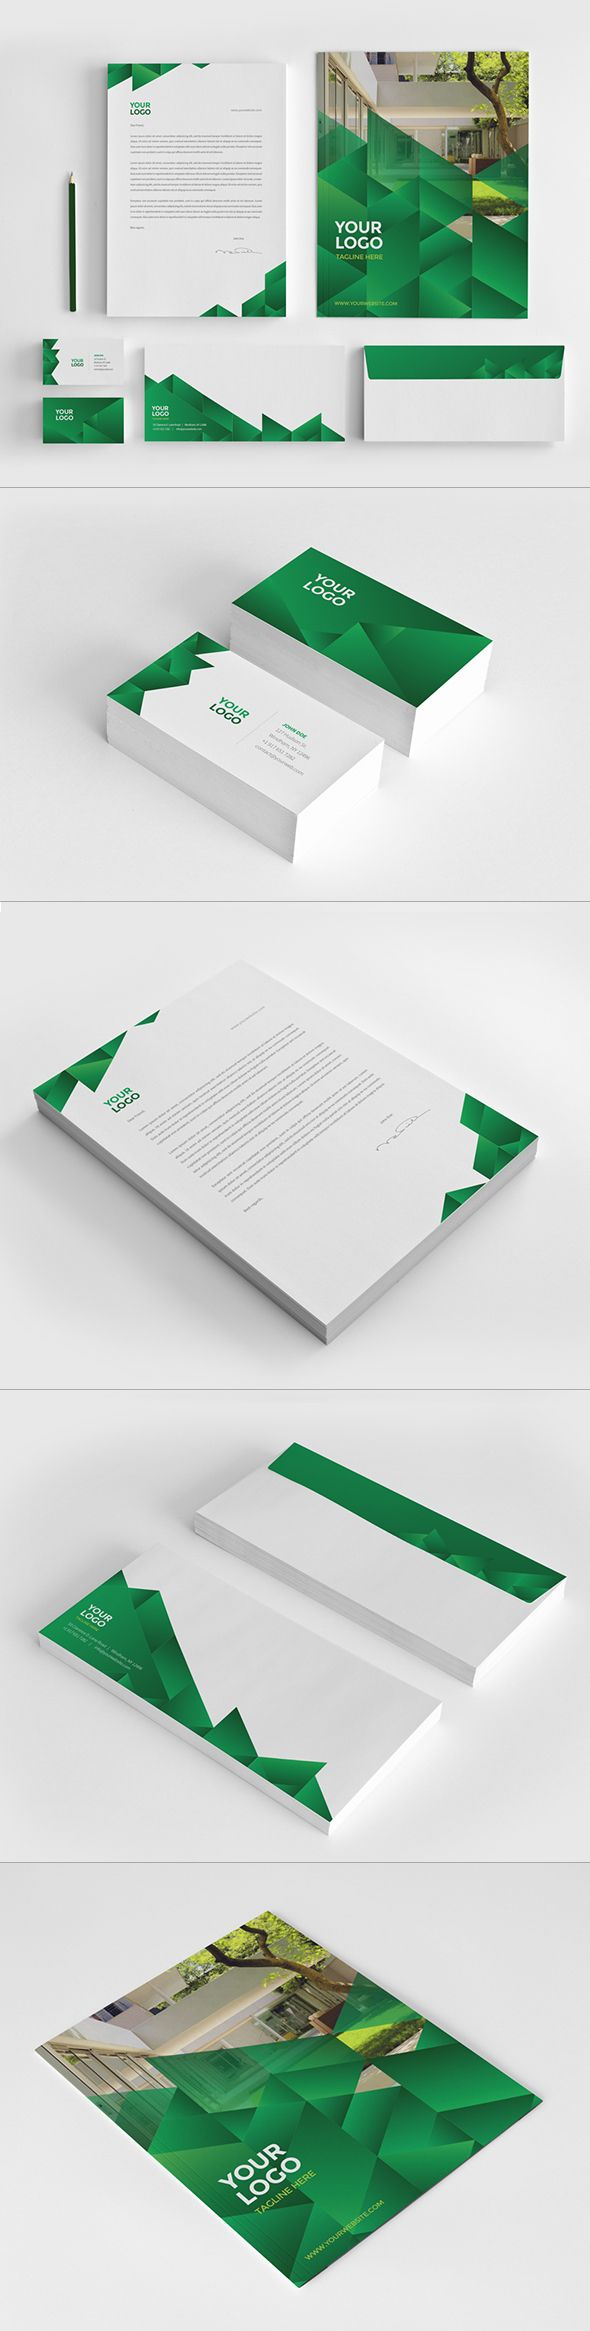 Ecologic Stationery Pack by Abra Design, via Behance